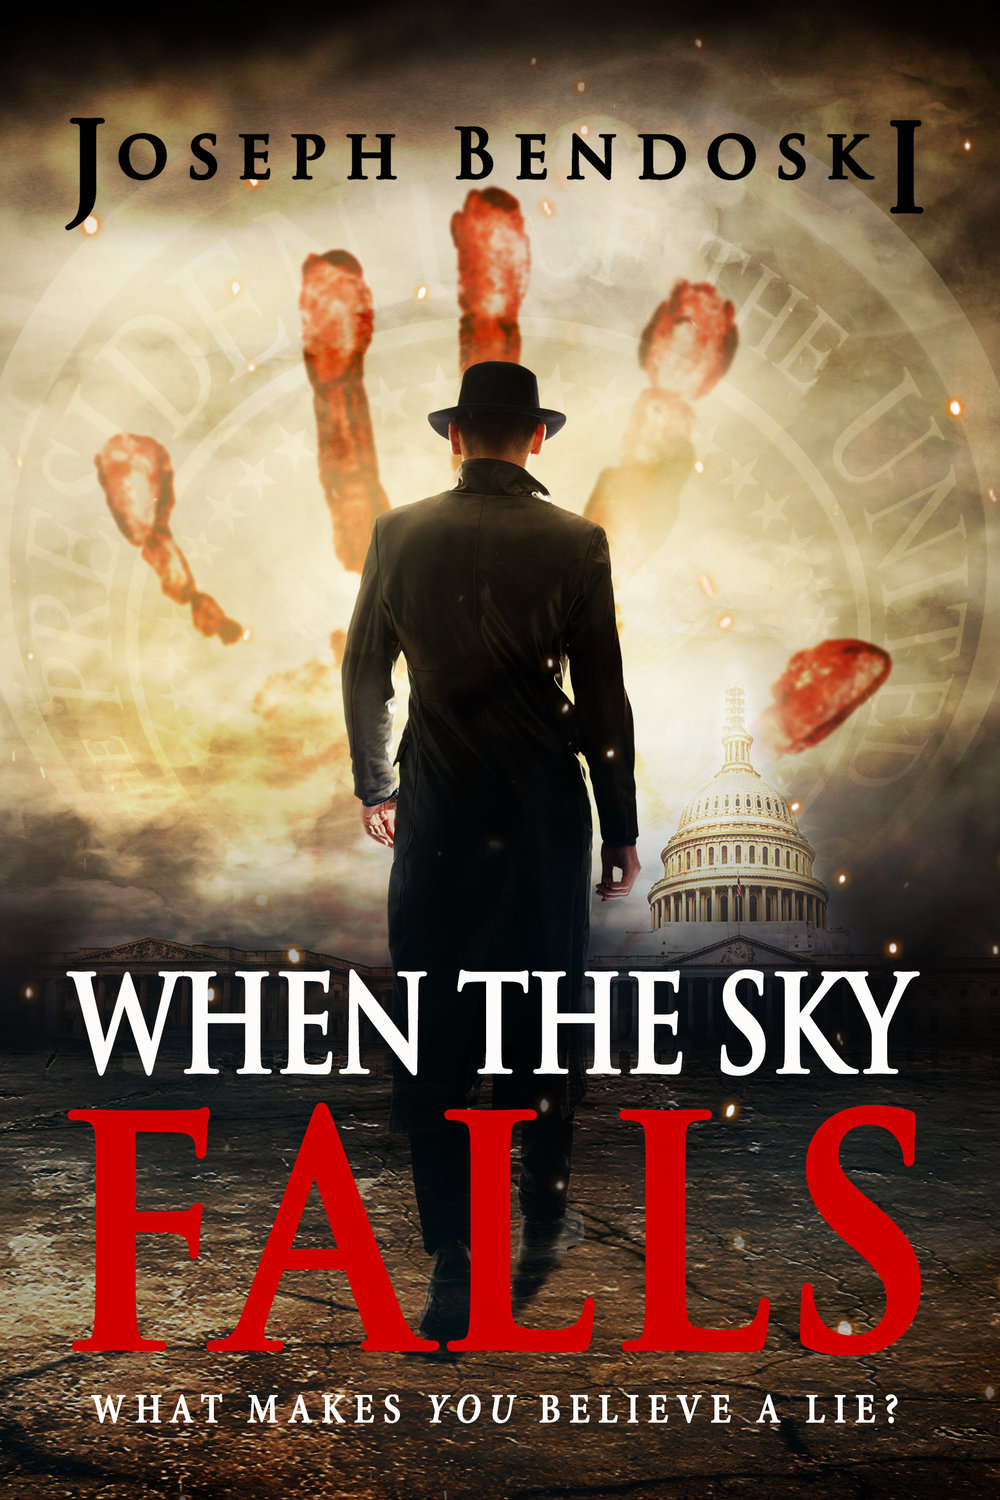 Final Digital eBook Cover 6x9 - RGB  - When The Sky Falls by Joseph Bendoski.jpg